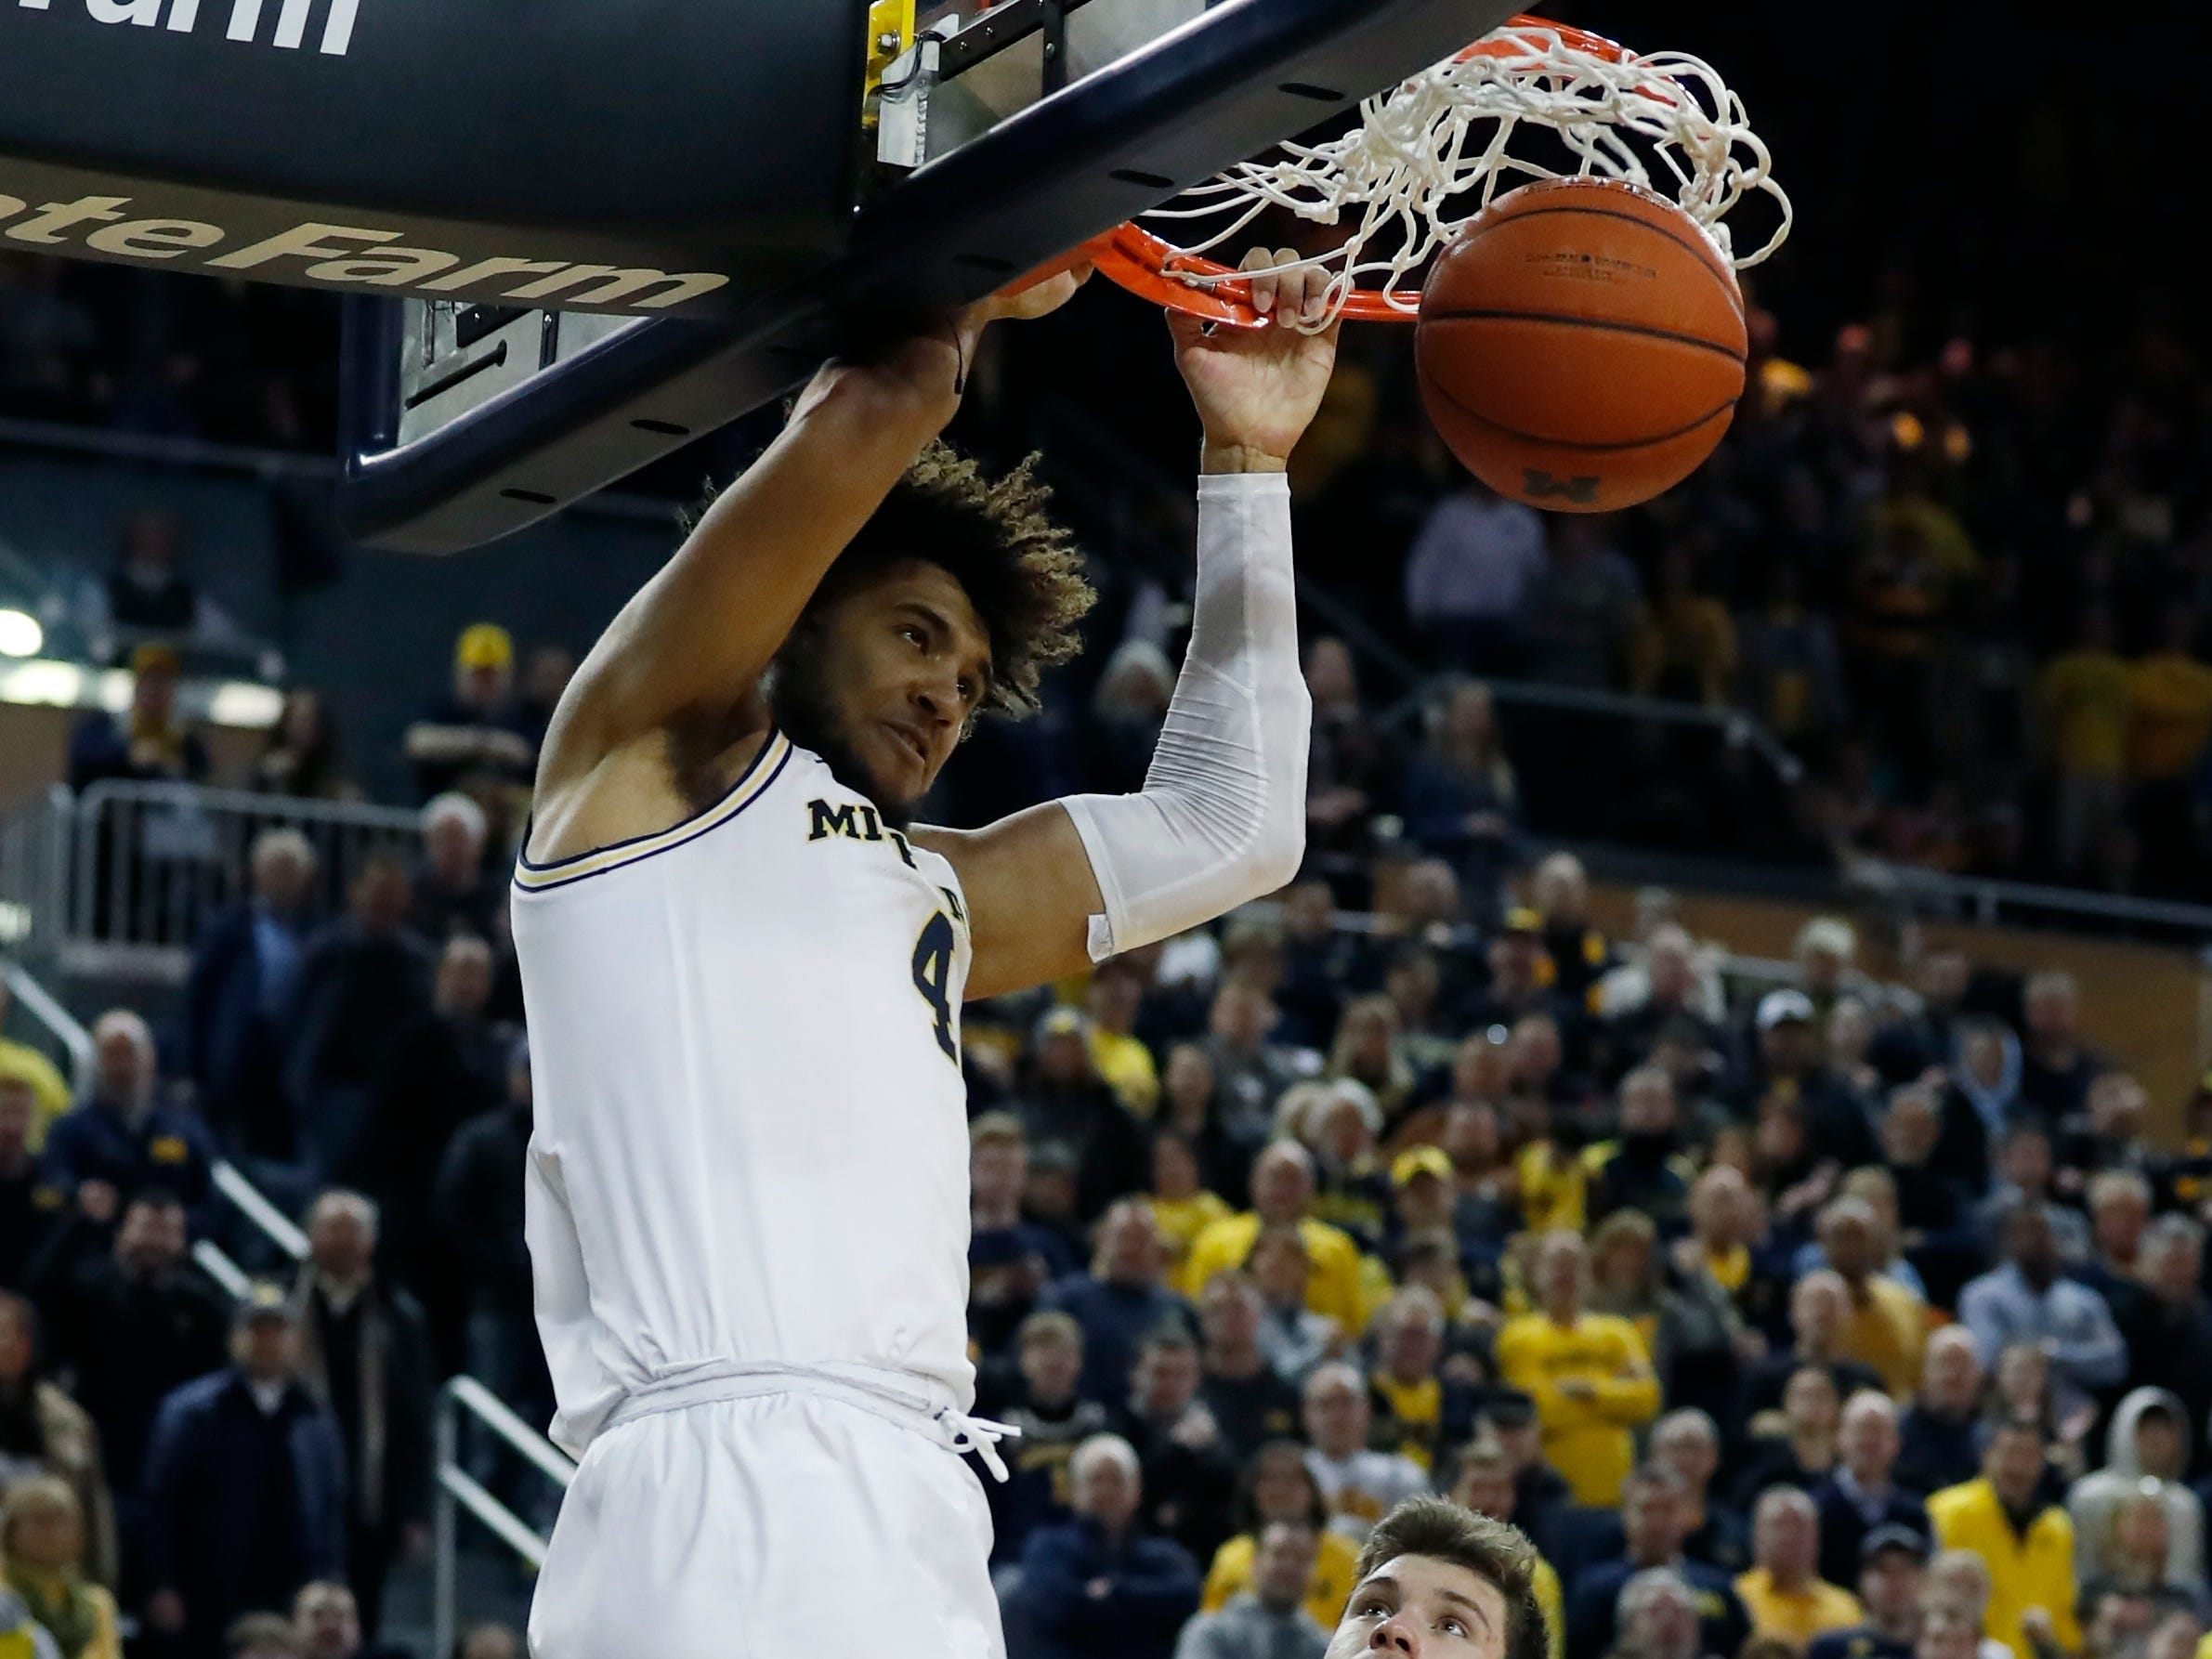 Michigan forward Isaiah Livers dunks during the second half